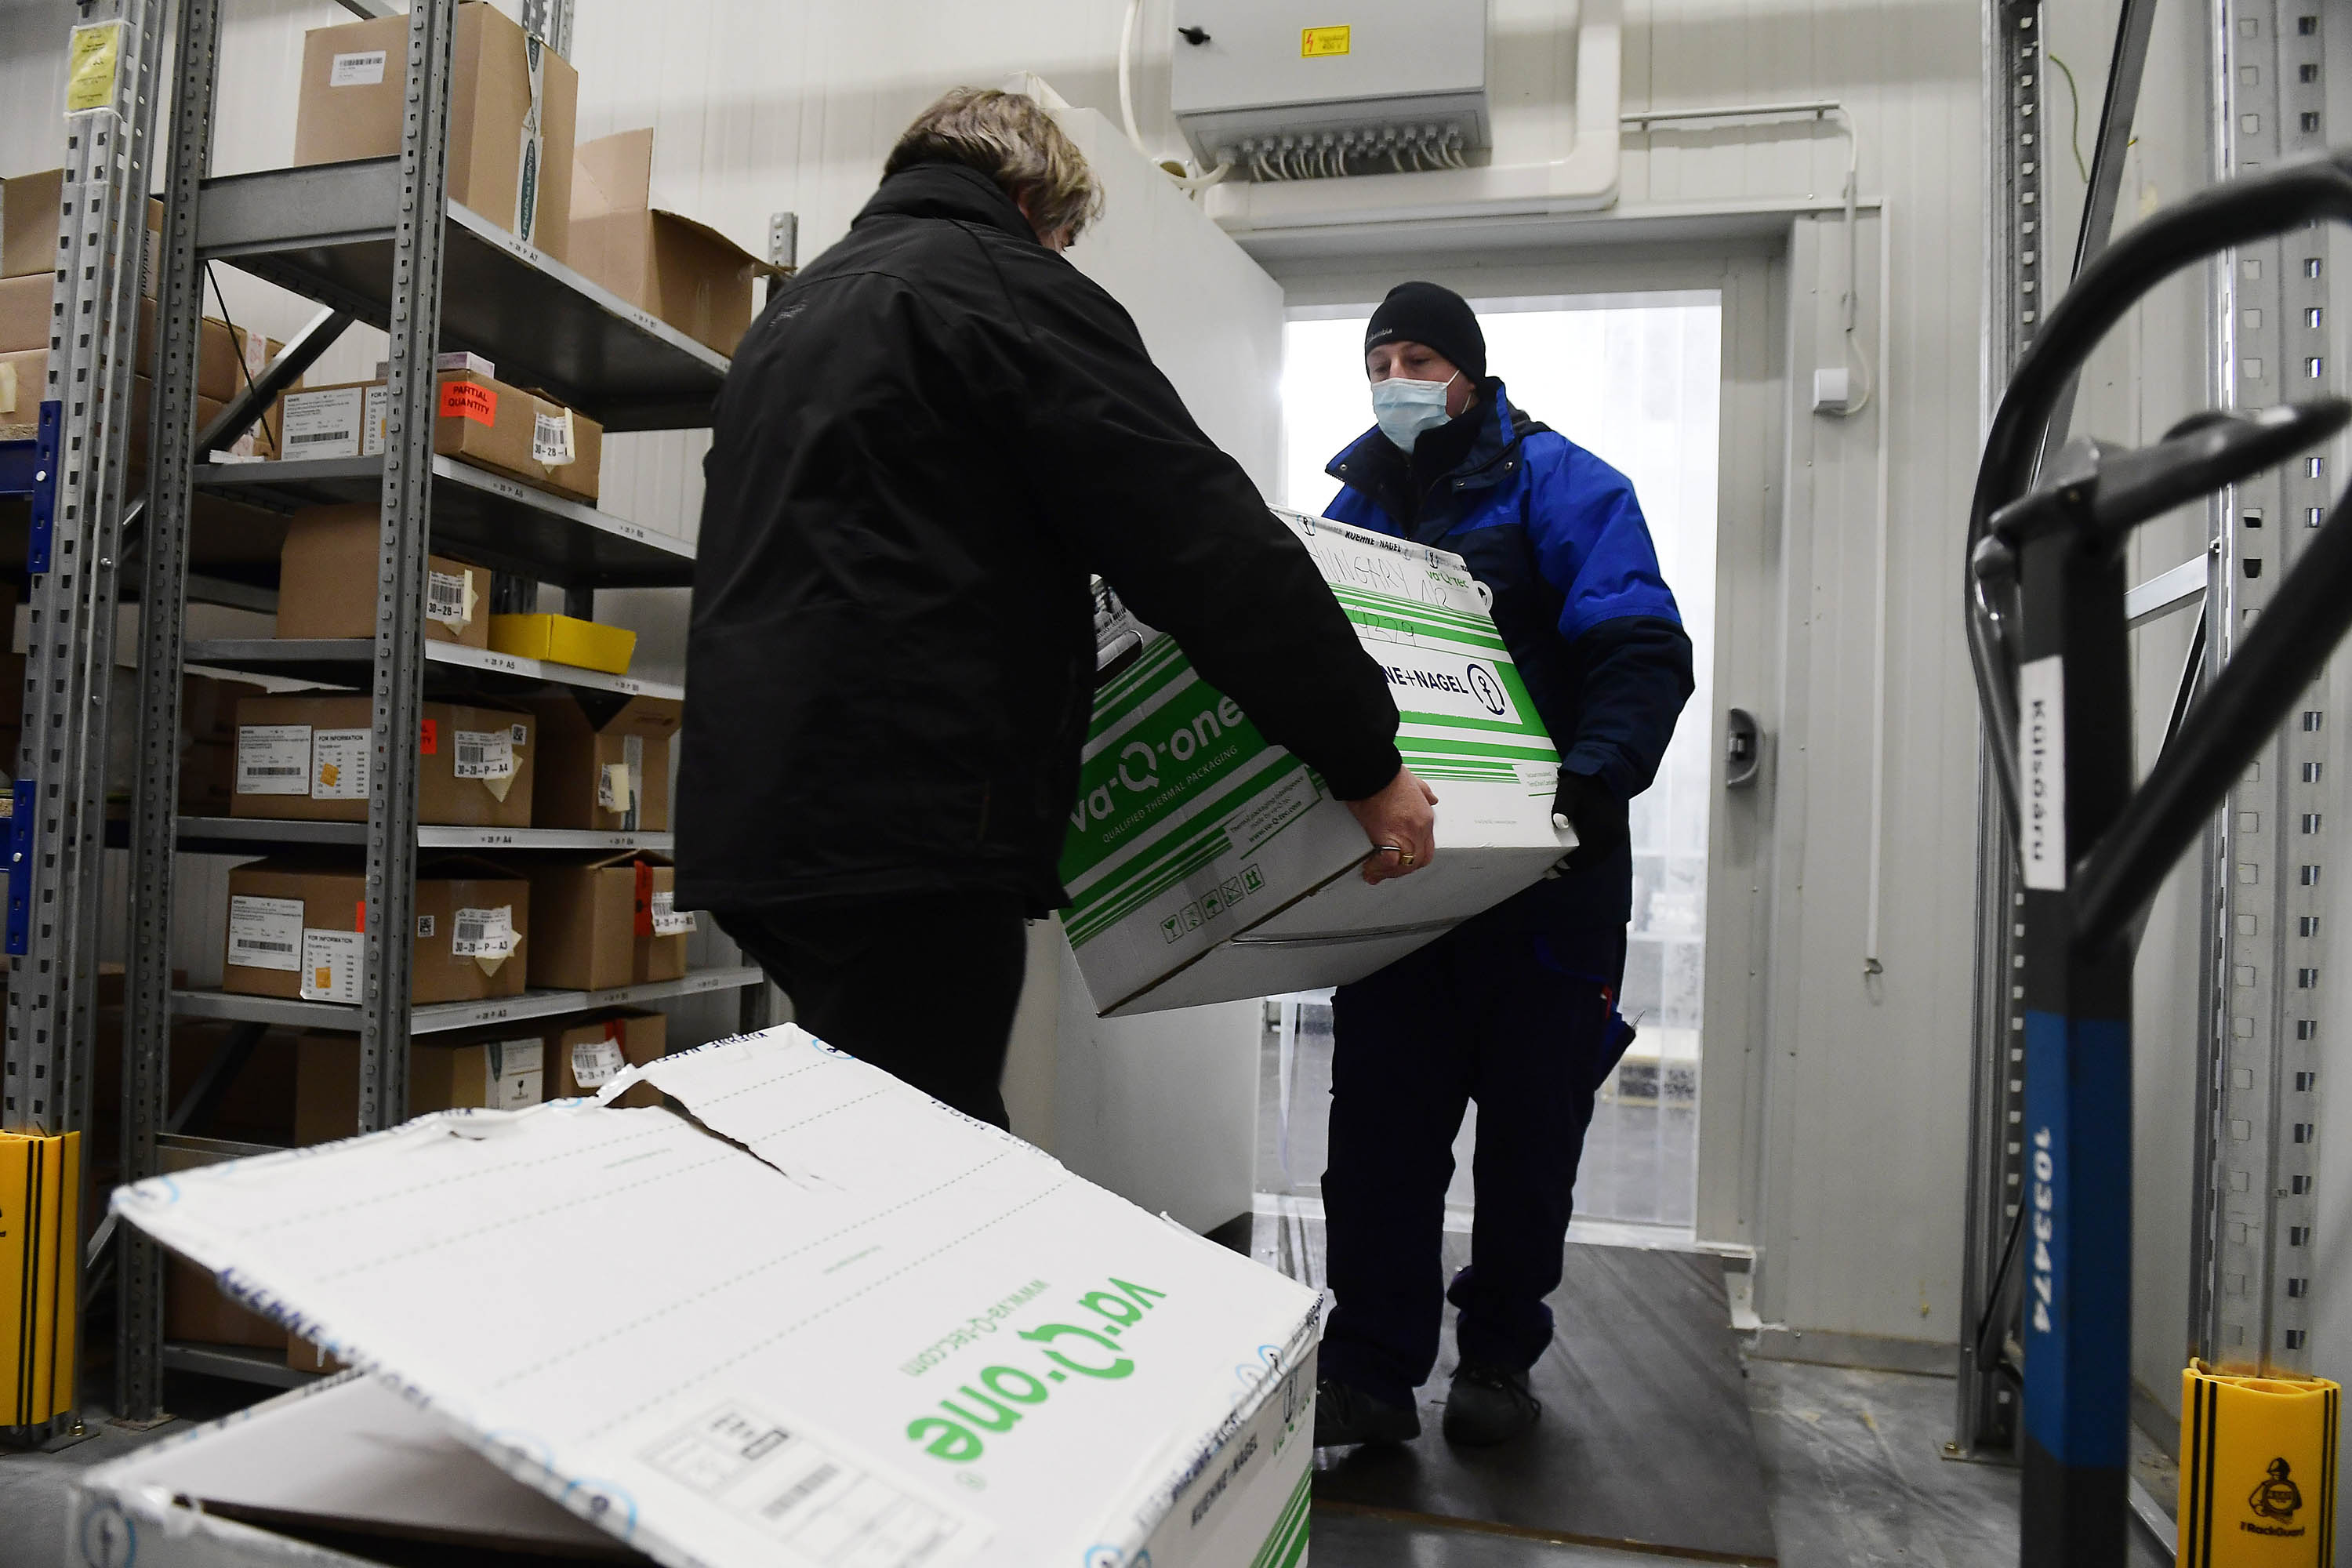 The men have been carrying a box containing the Moderna COVID-19 vaccine since the first shipment arrived in Budapest, Hungary, on January 12th.